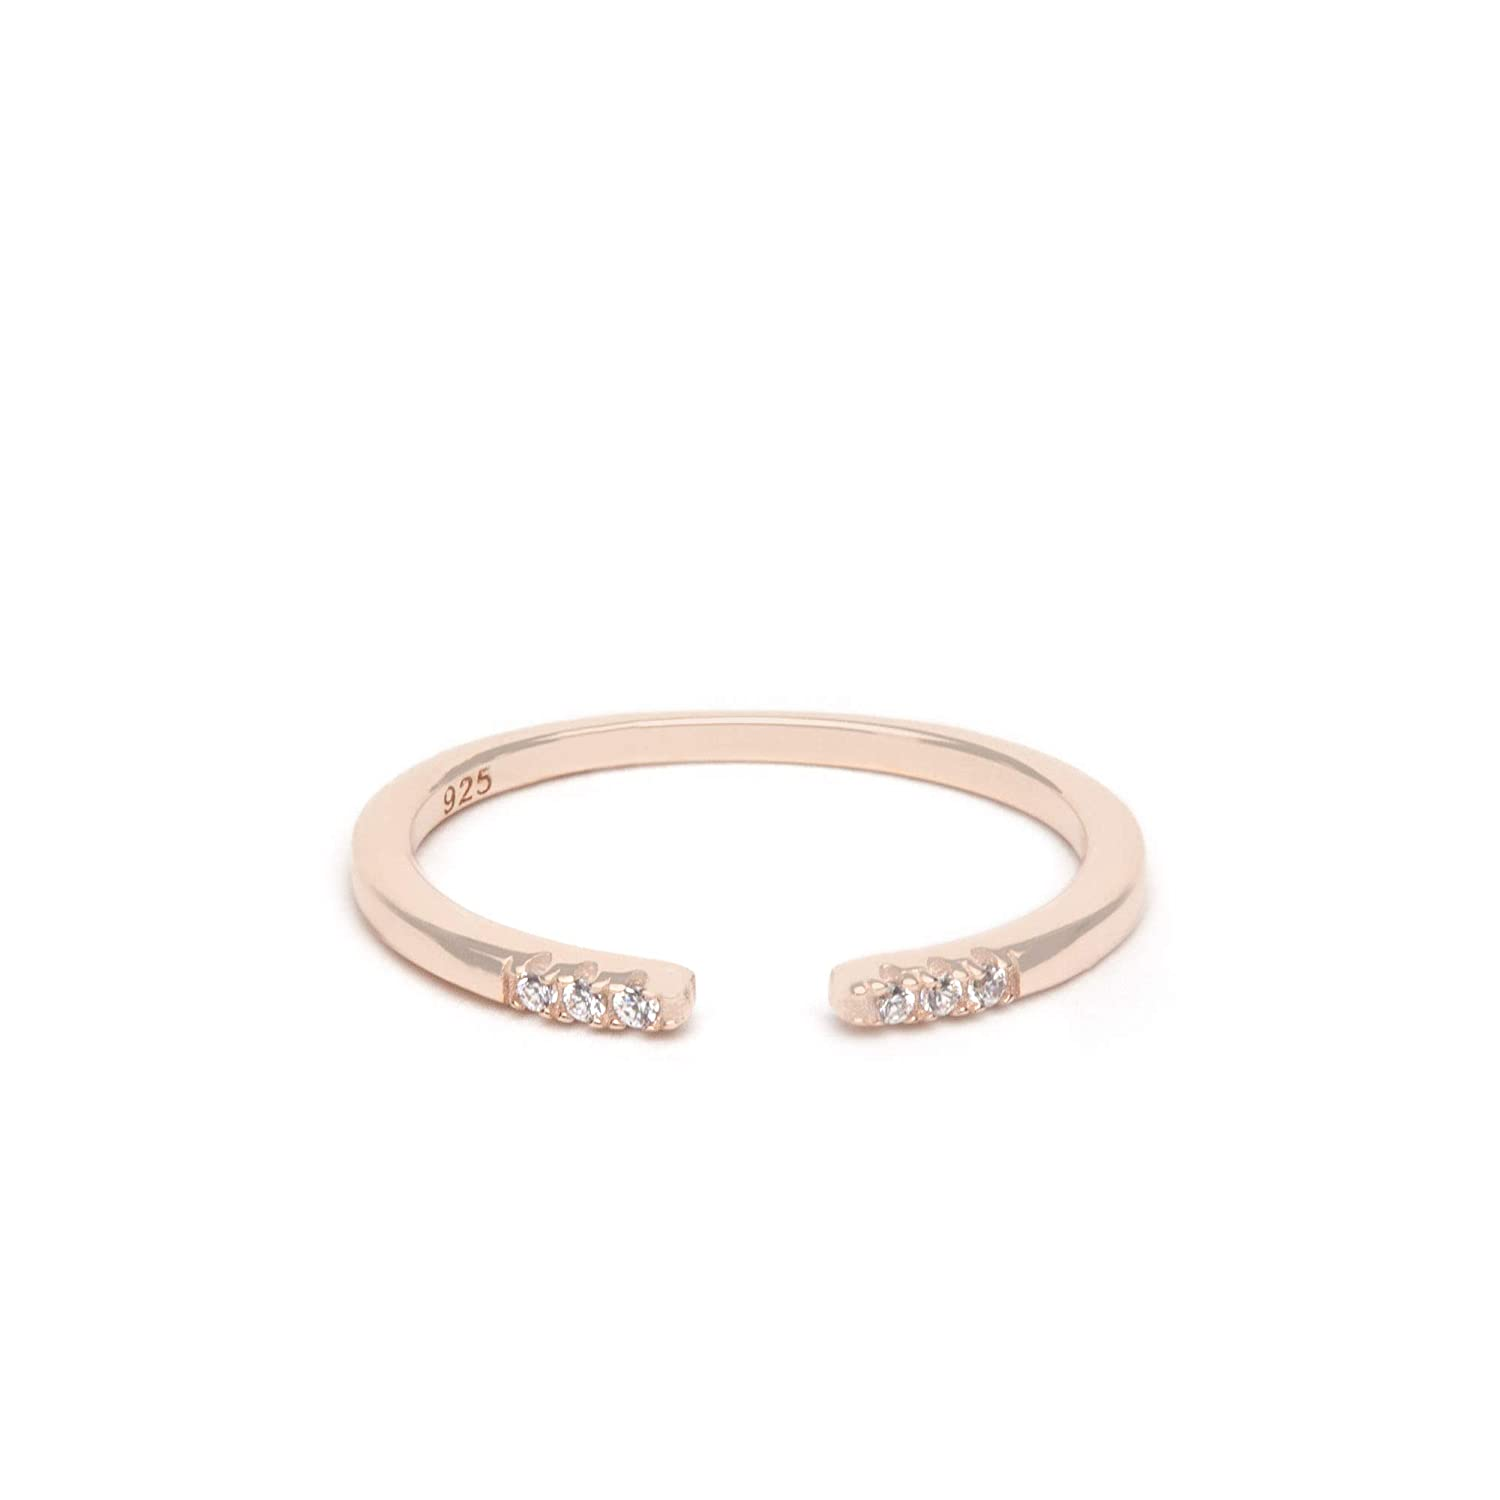 Jeannes Jewels Womens 925 Sterling Silver Avery Stackable Wedding Band Ring 1.5mm